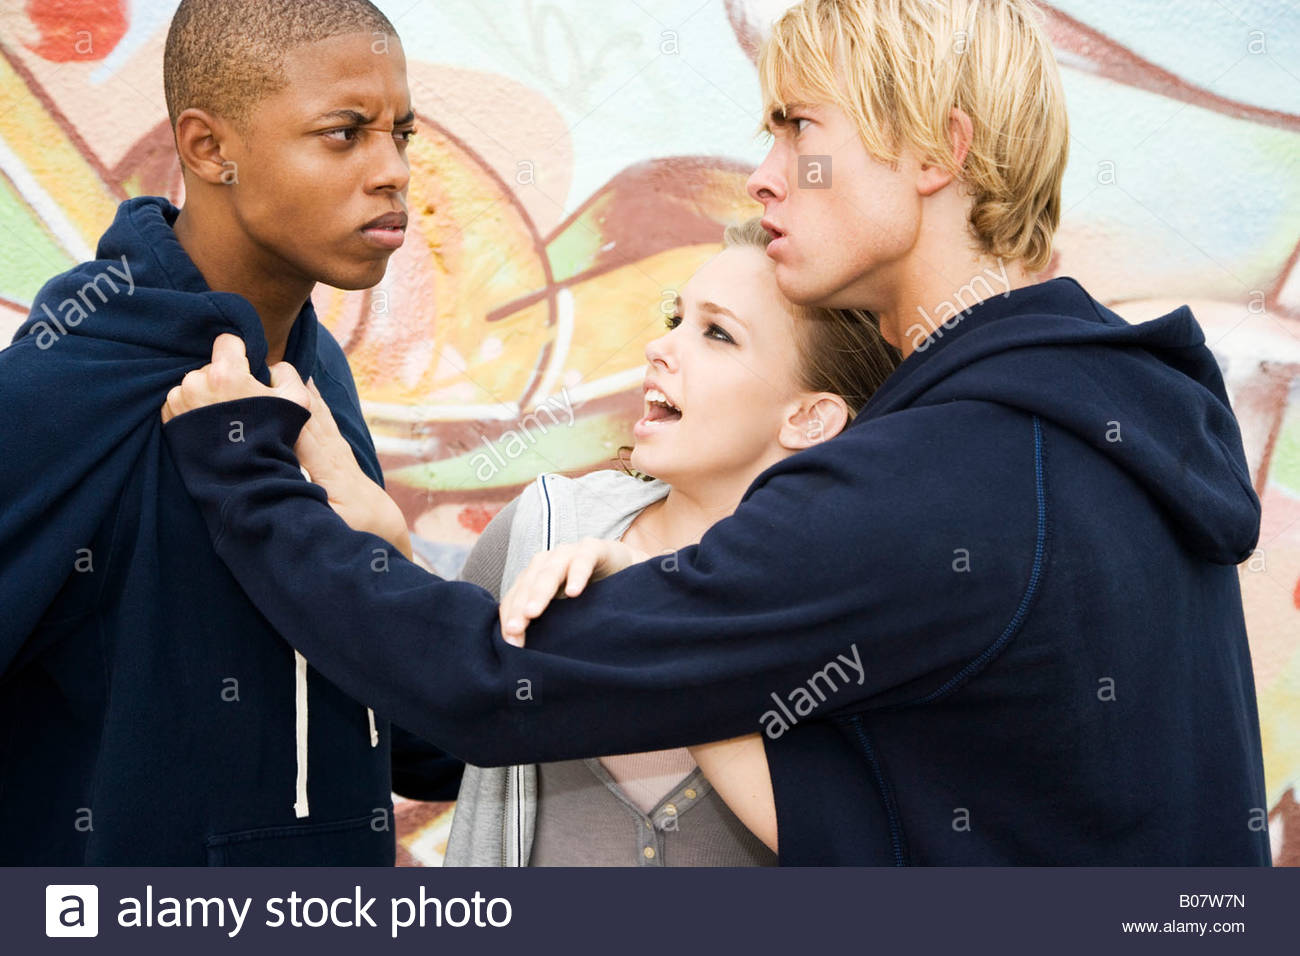 Two guys fighting over a girl